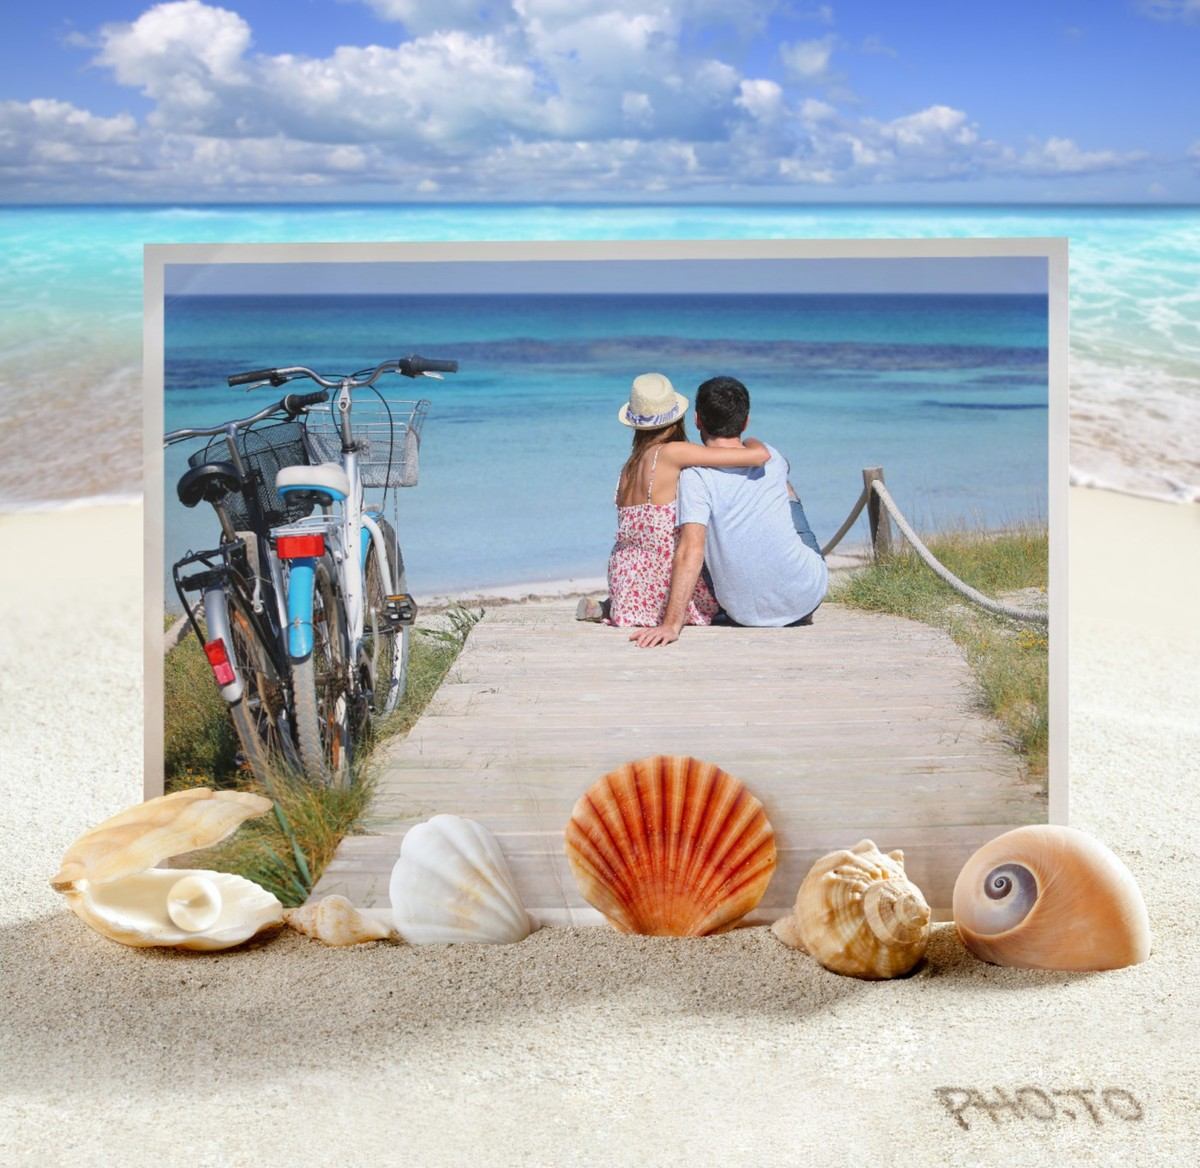 Photo of a happy couple near the sea with a summer frame applied